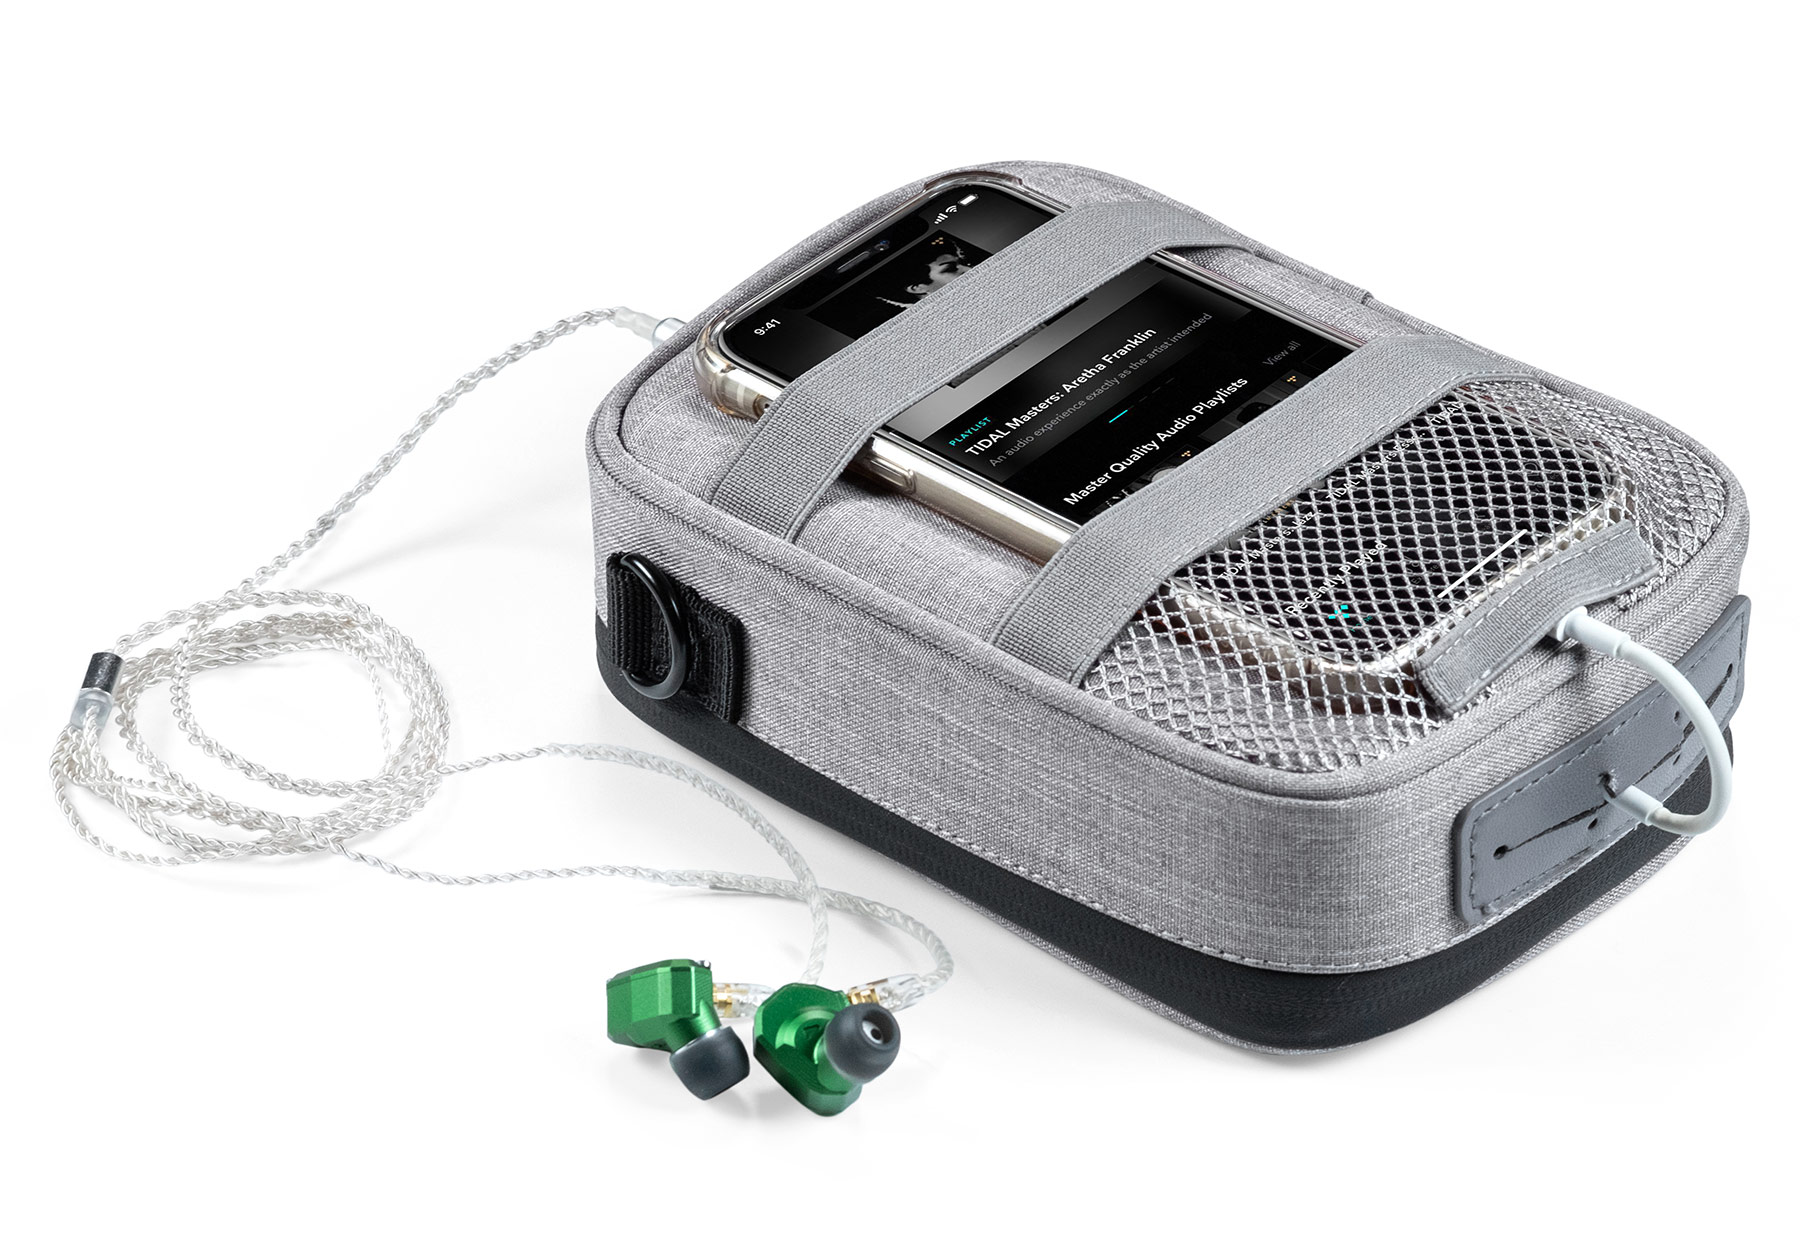 iTraveller from iFi audio